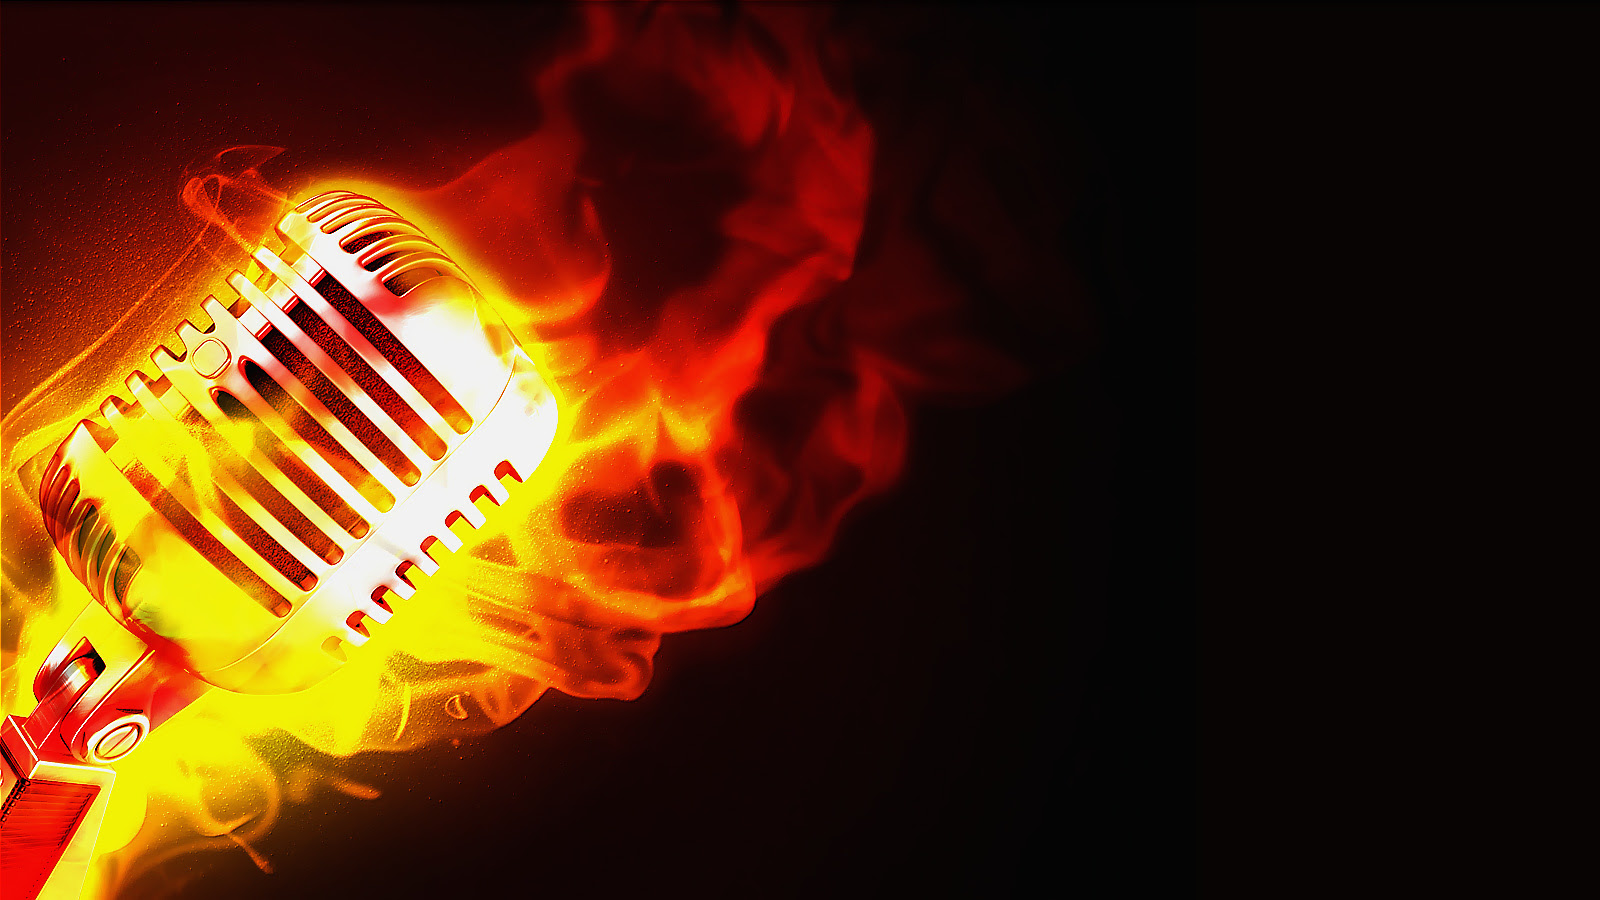 Musicmusician Images Flaming Microphone Hd Wallpaper And Background